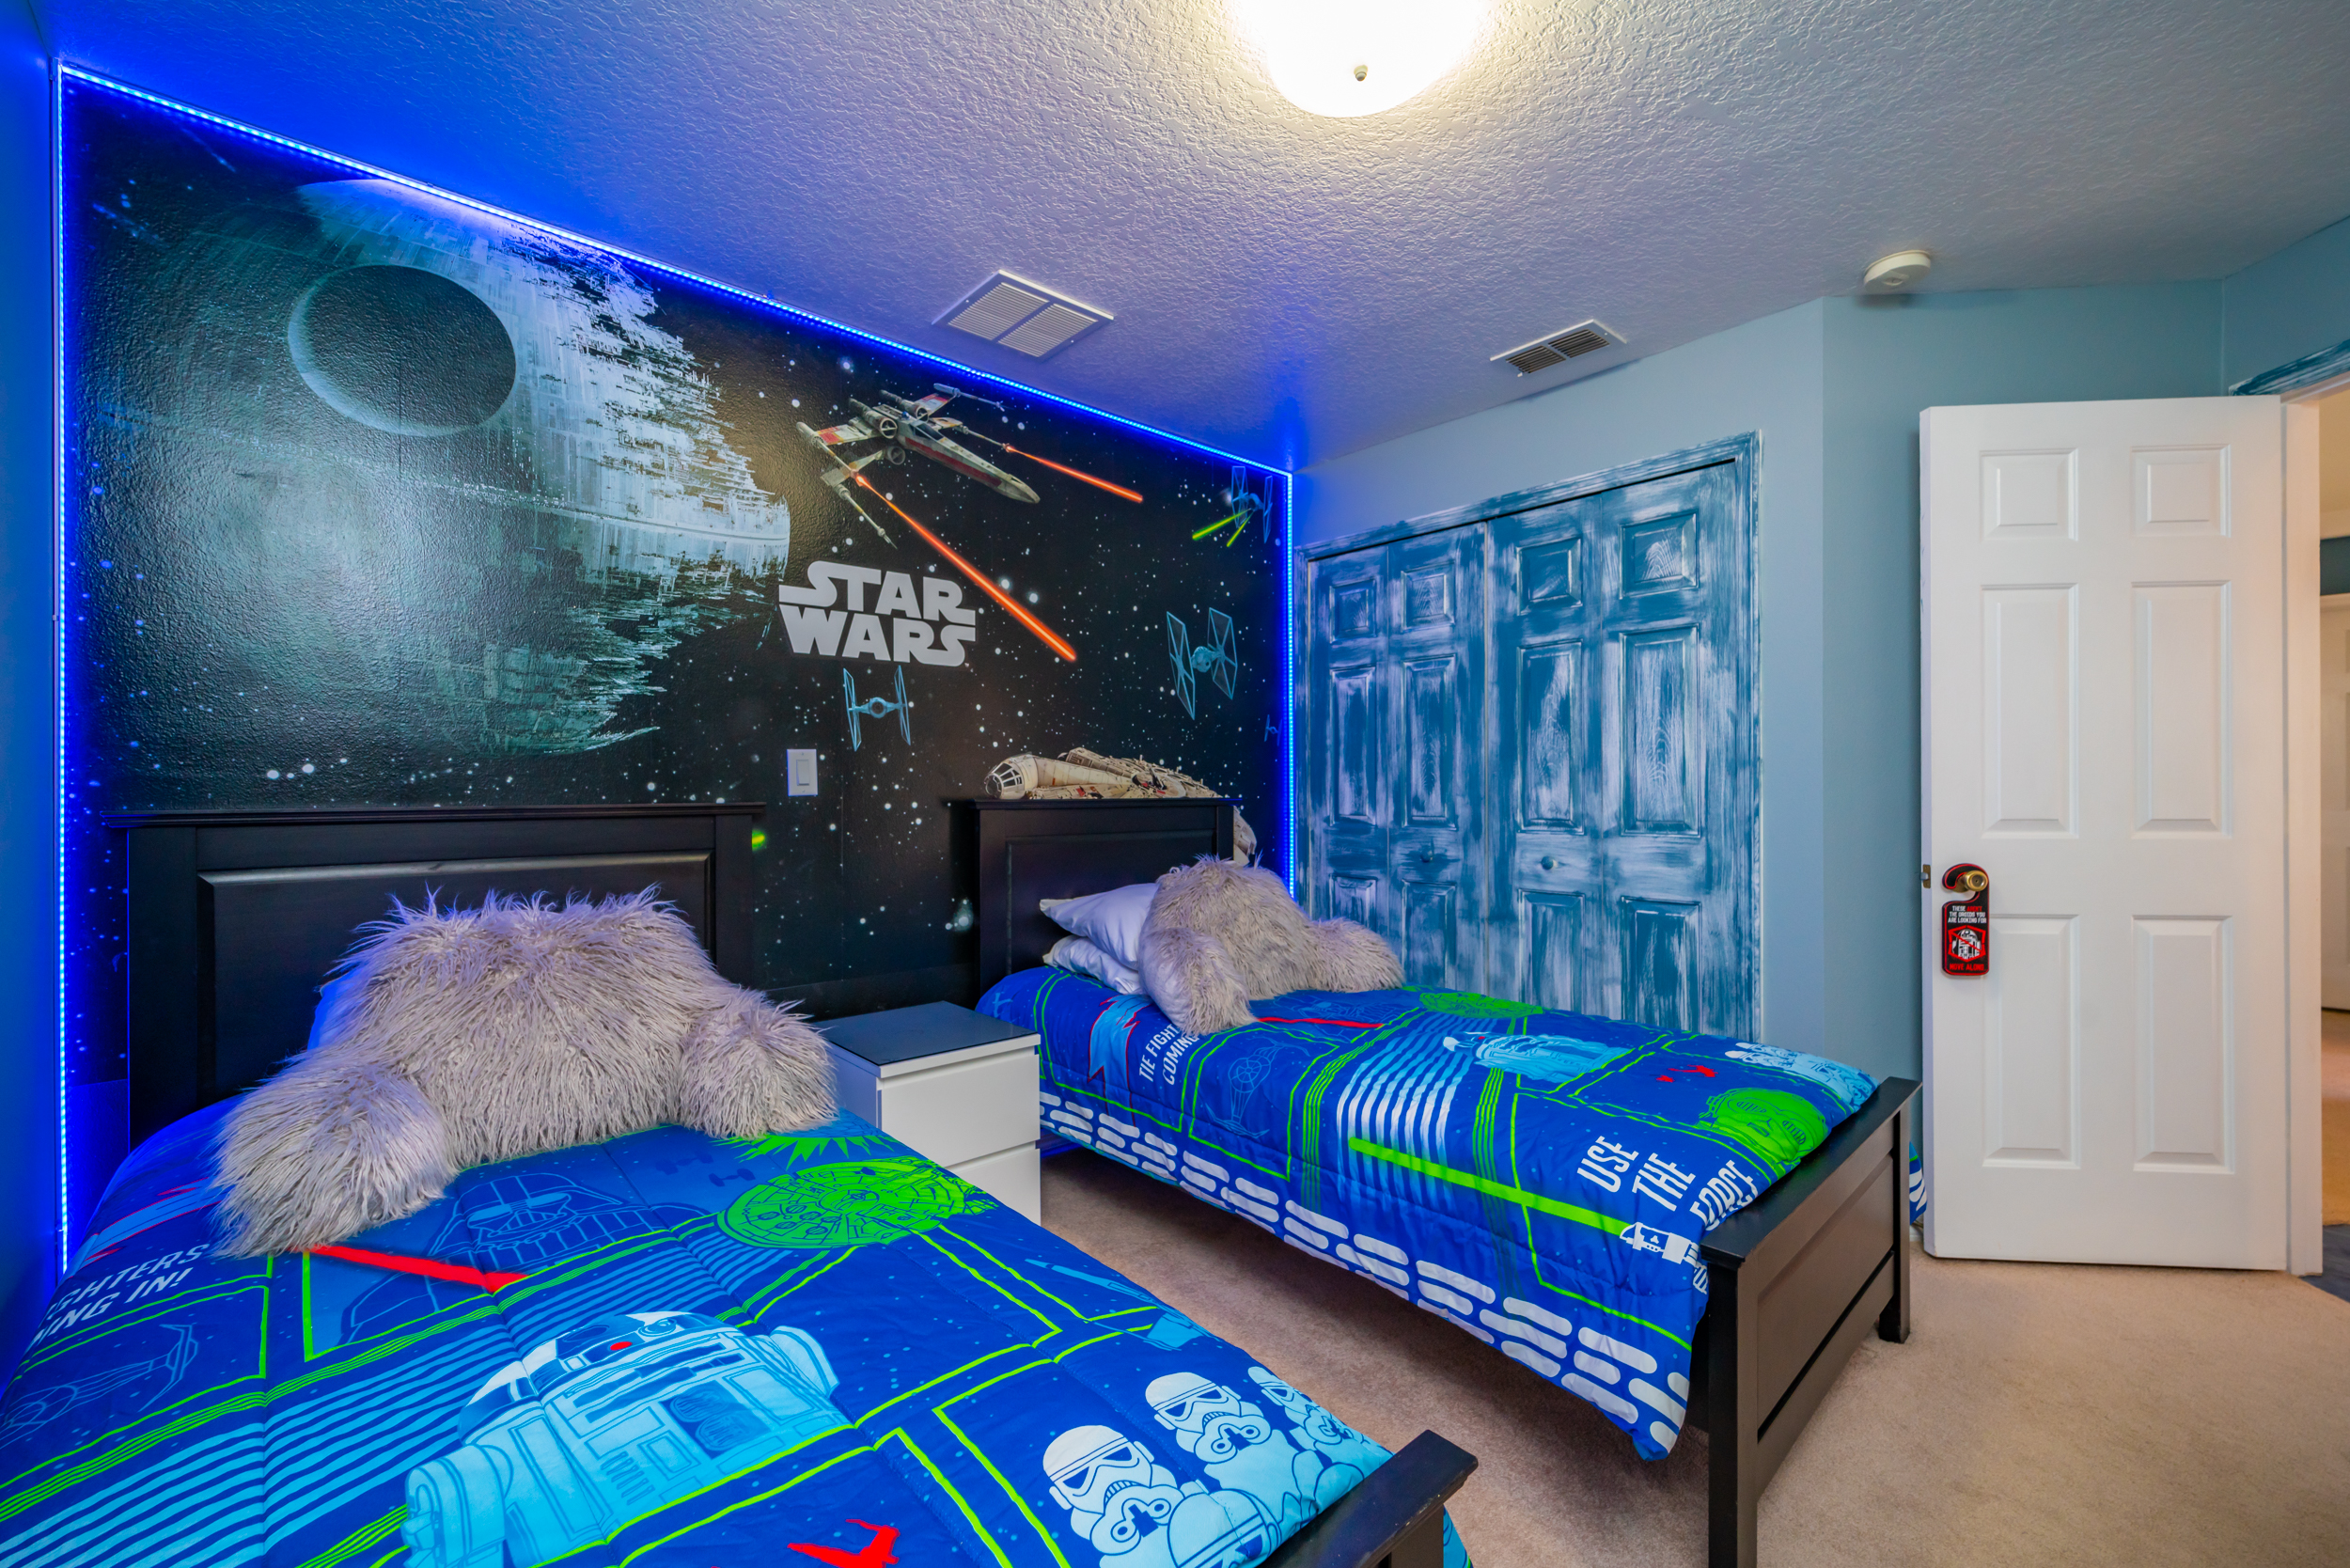 Bedroom 4 with a space theme and two twin beds